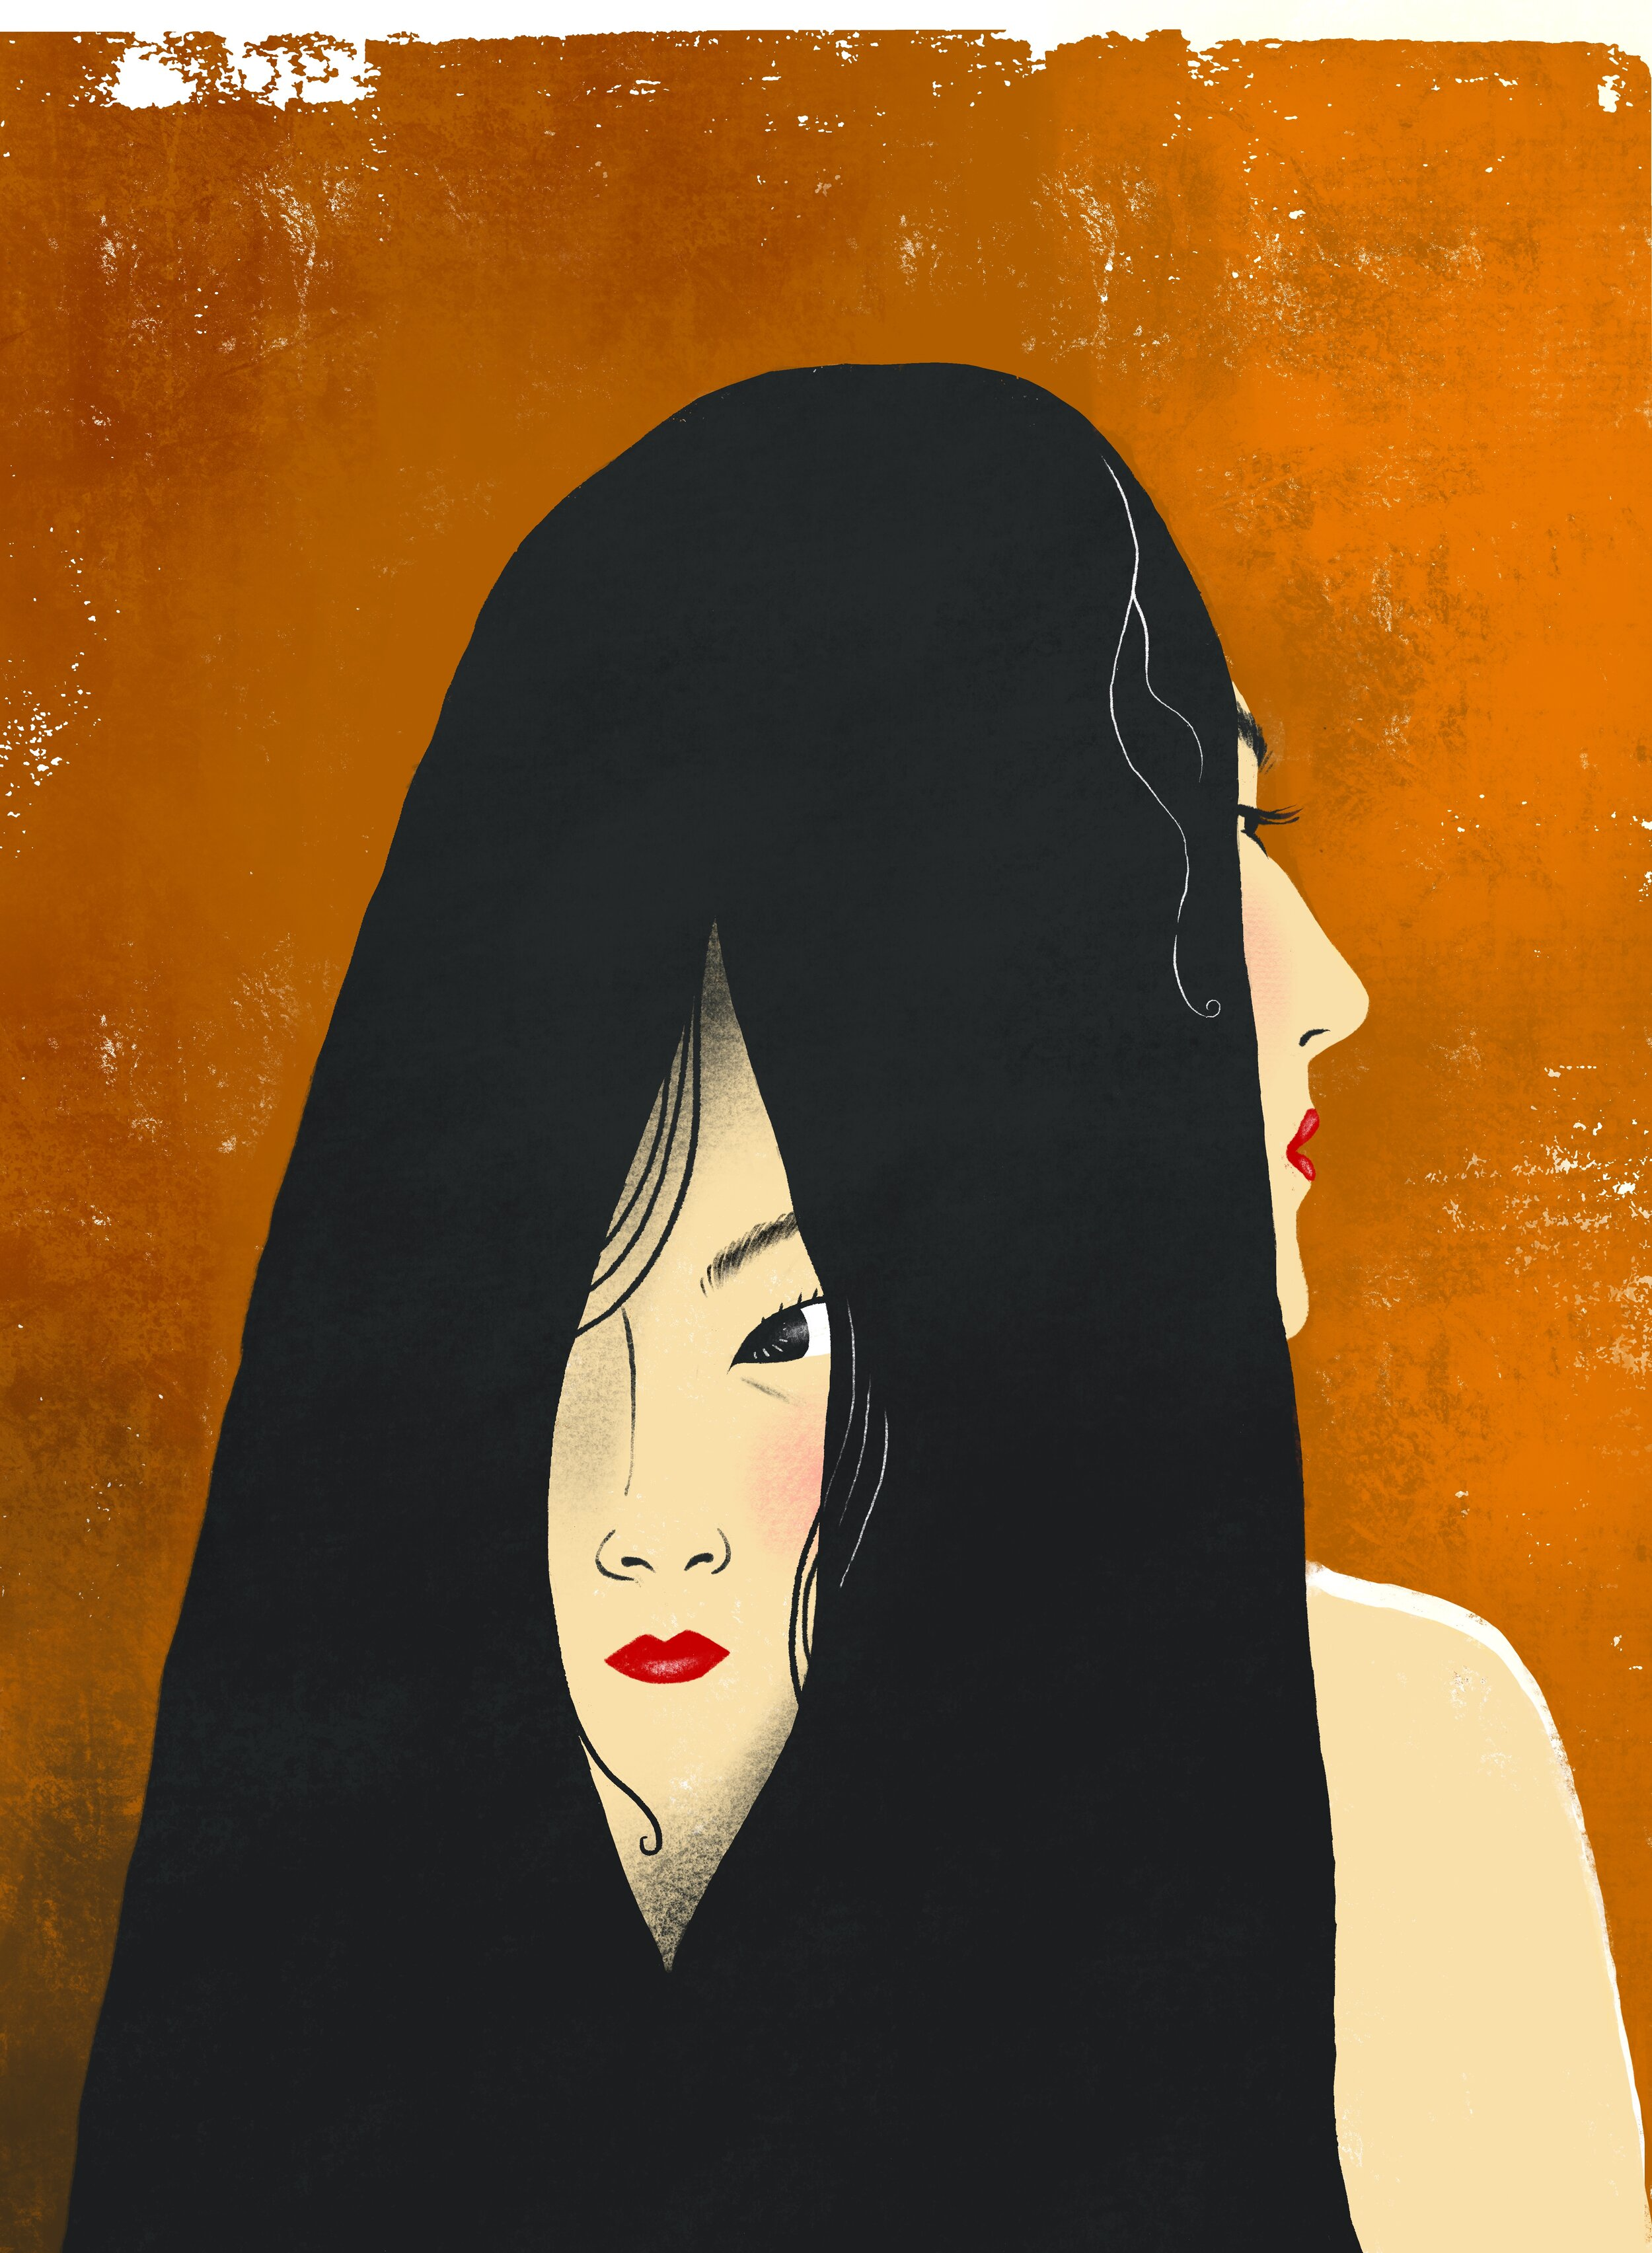 """""""Saving Face"""" (2020)Digital, Screenprint - This piece is about my experiences with hiding my true emotions as an Asian woman. Too often I have minimized myself in the past in order to not cause a stir, but I have found that these feelings always find a way of leaking out one way or another, and it more often than not is a disservice to myself when I am denying my true emotions, or when someone is being disrespectful to me."""